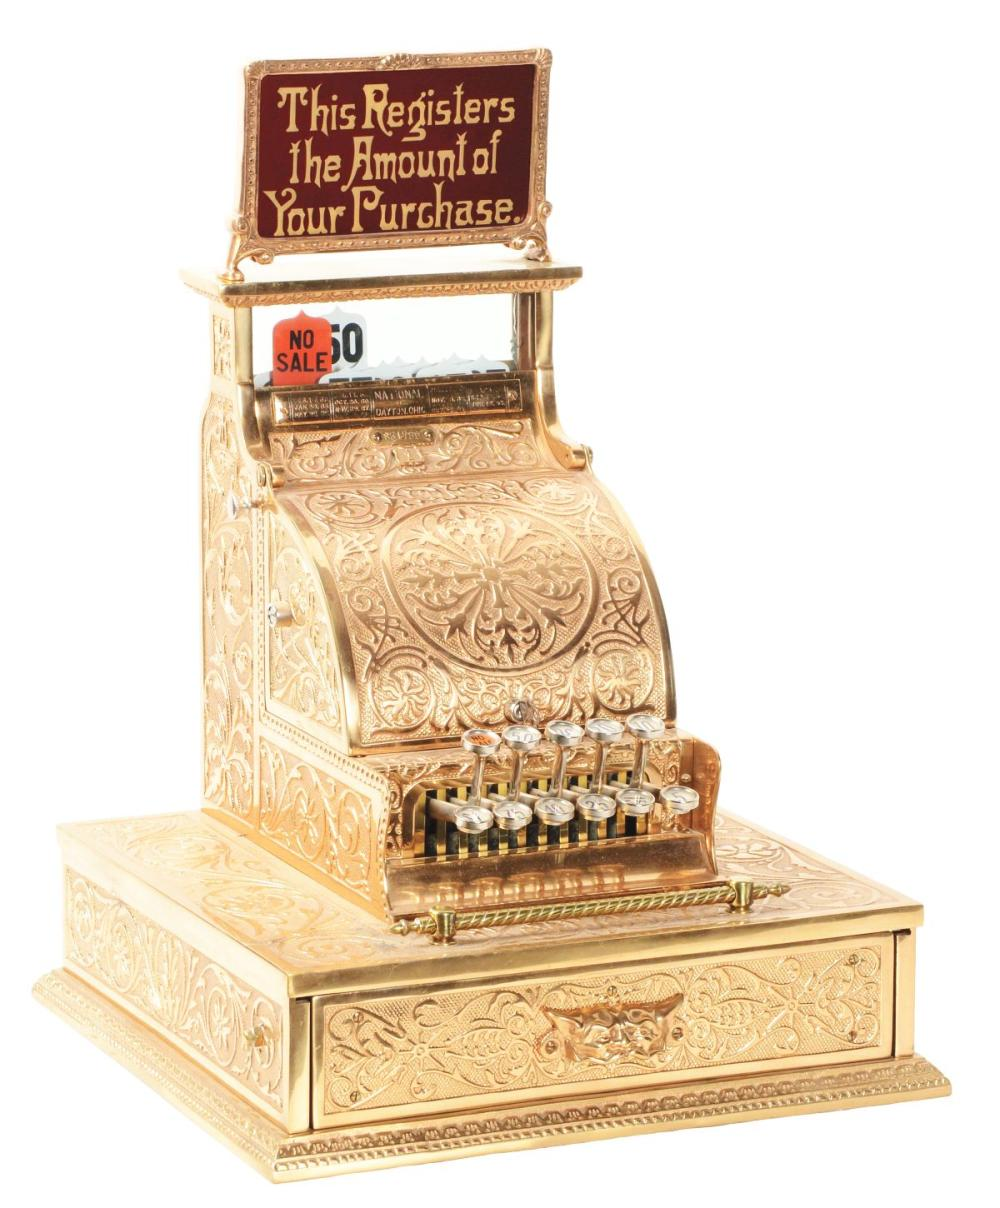 NATIONAL CASH REGISTER CO. MODEL #1.